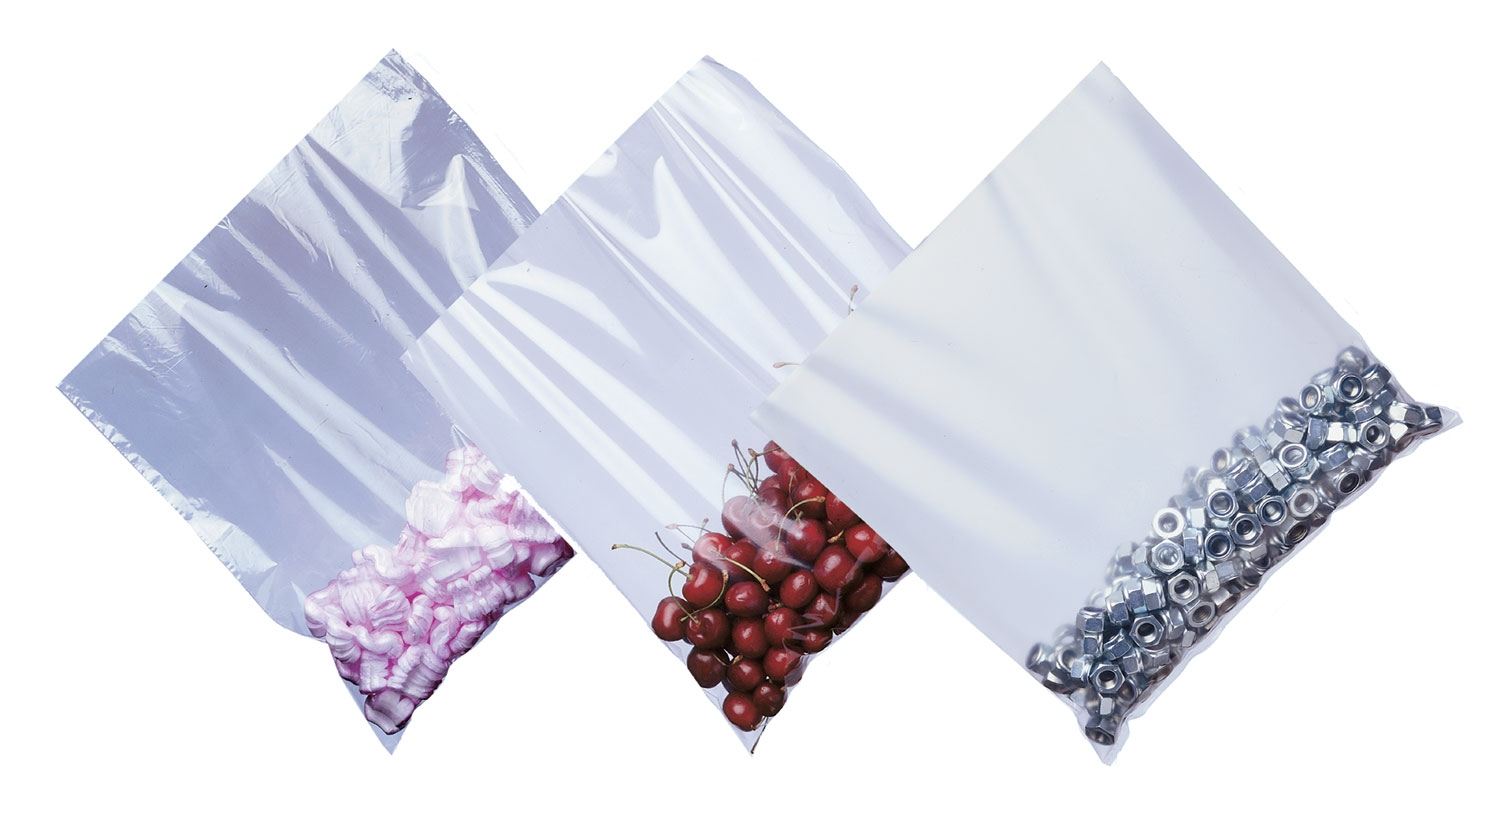 20inch X 30inch Medium Clear Easy Opening Poly Bags 200G